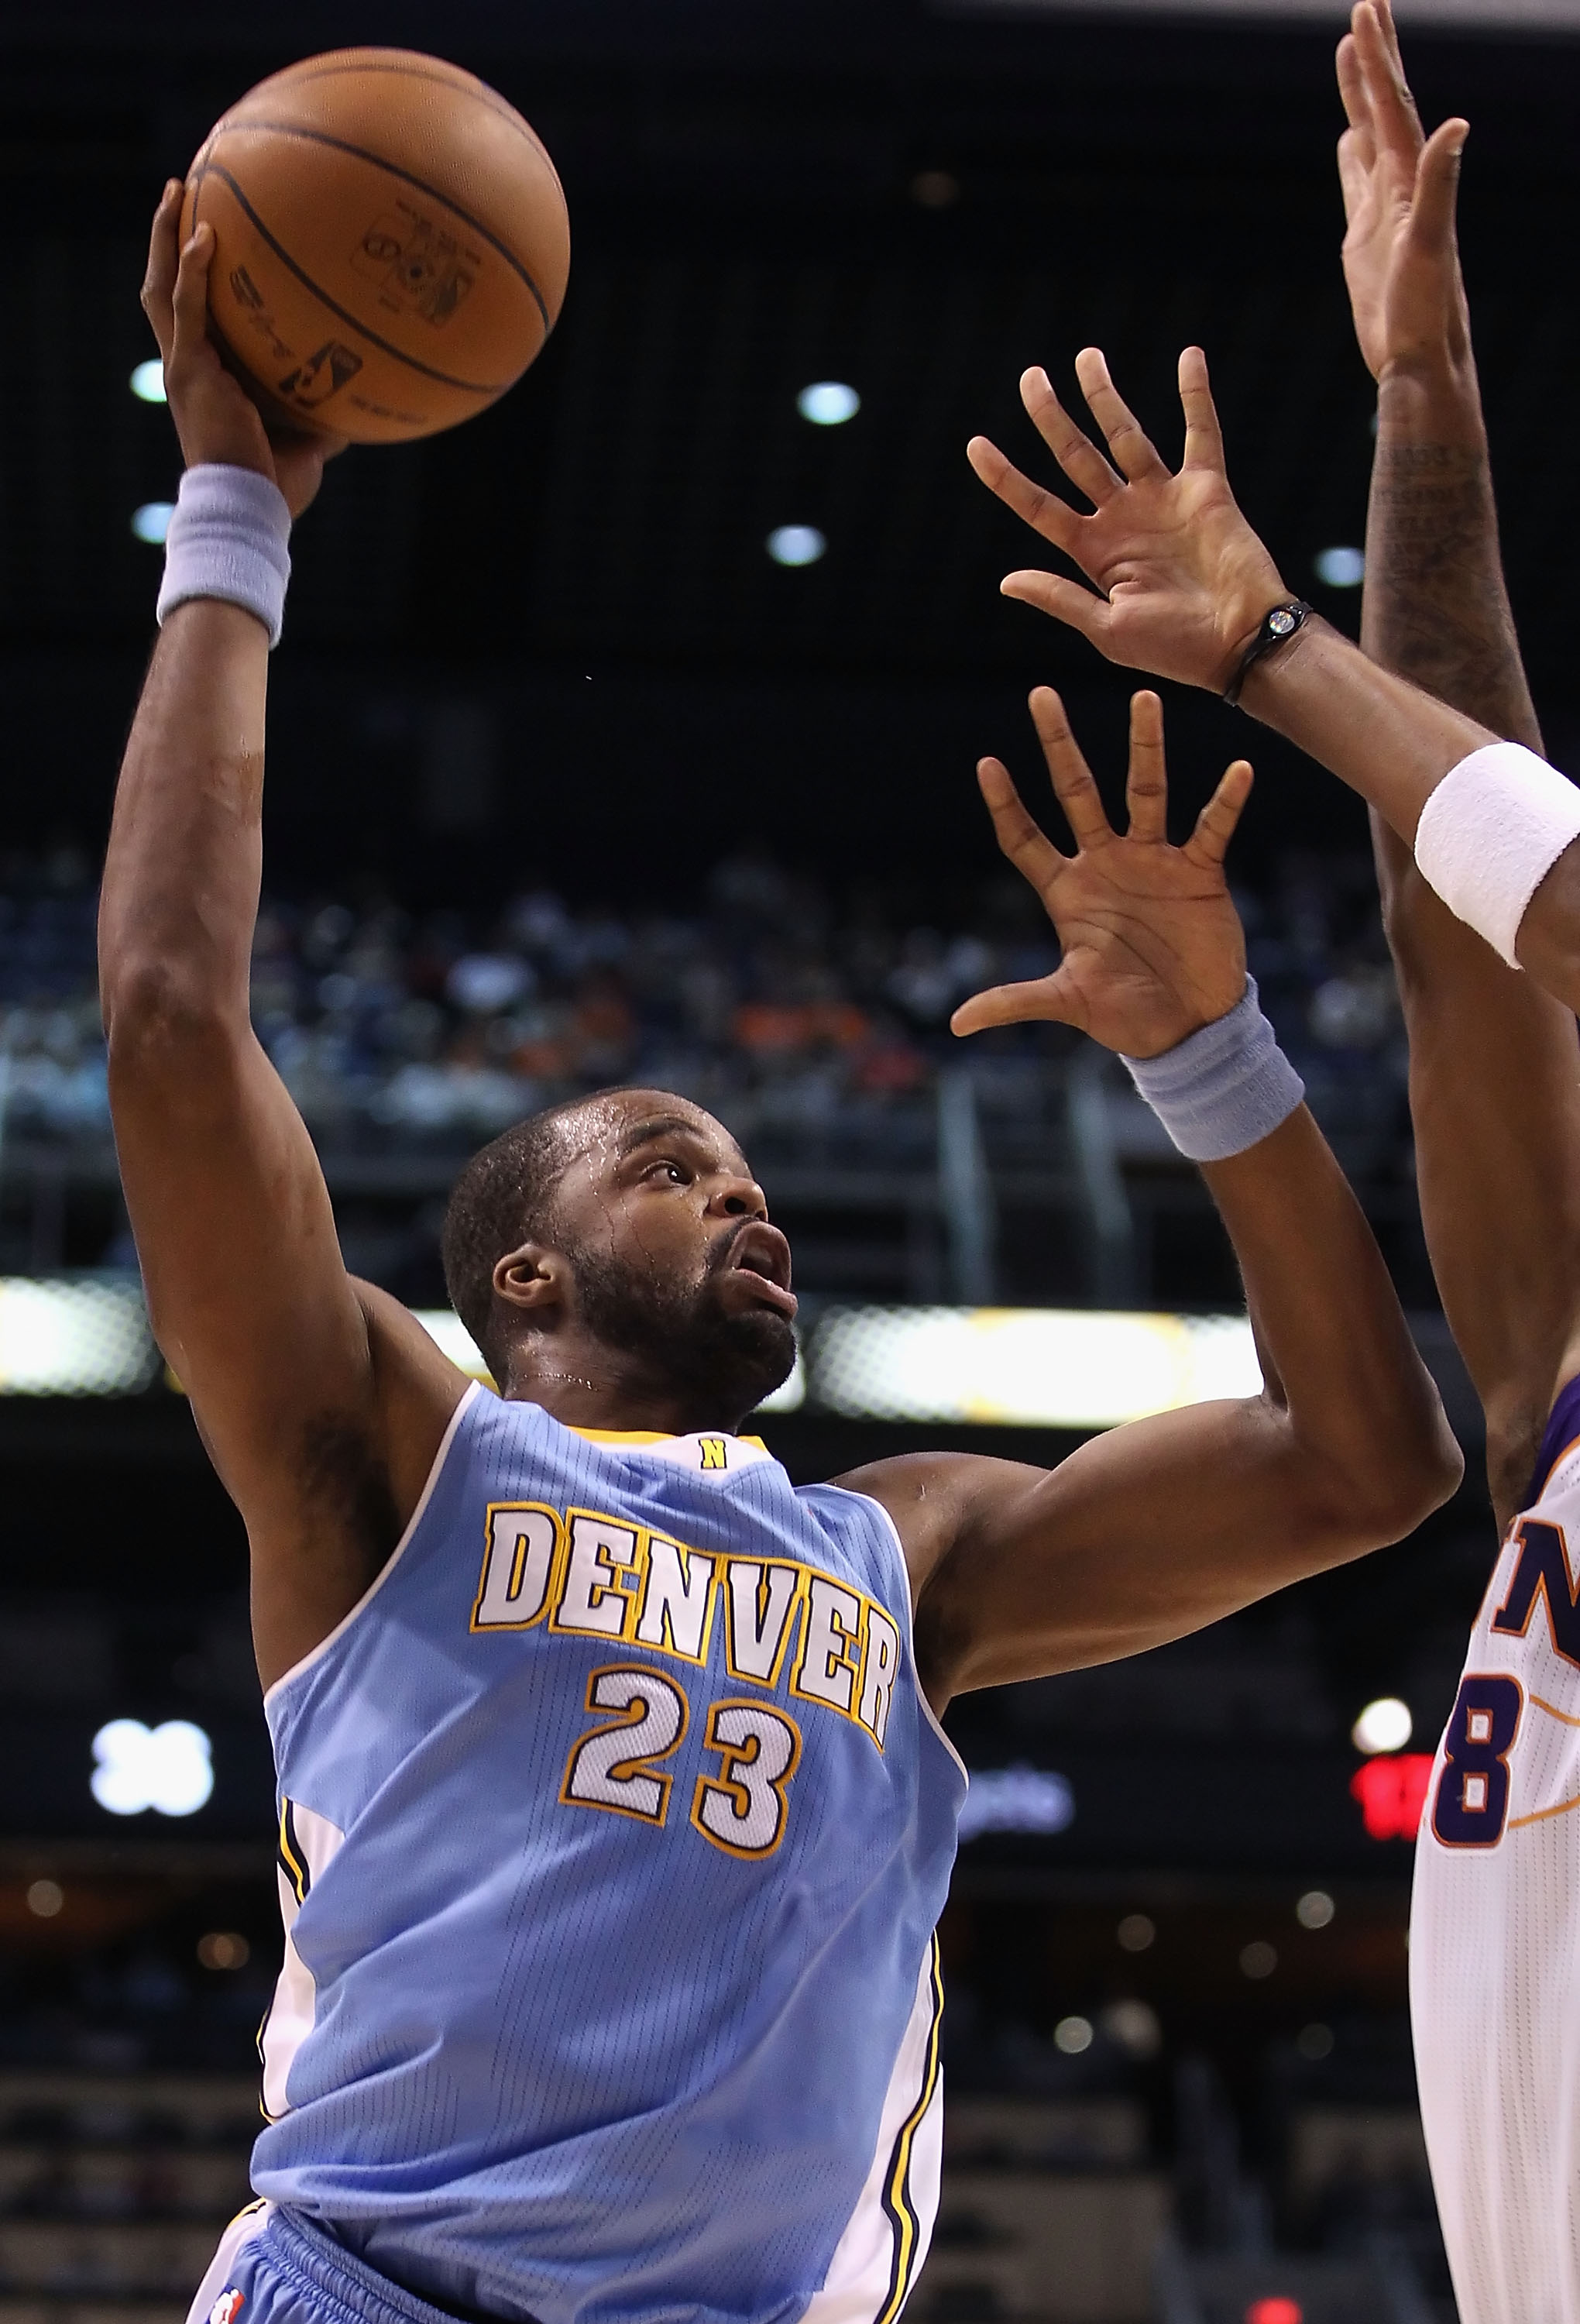 PHOENIX - OCTOBER 22:  Shelden Williams #23 of the Denver Nuggets puts up a shot against the Phoenix Suns during the preseason NBA game at US Airways Center on October 22, 2010 in Phoenix, Arizona. NOTE TO USER: User expressly acknowledges and agrees that